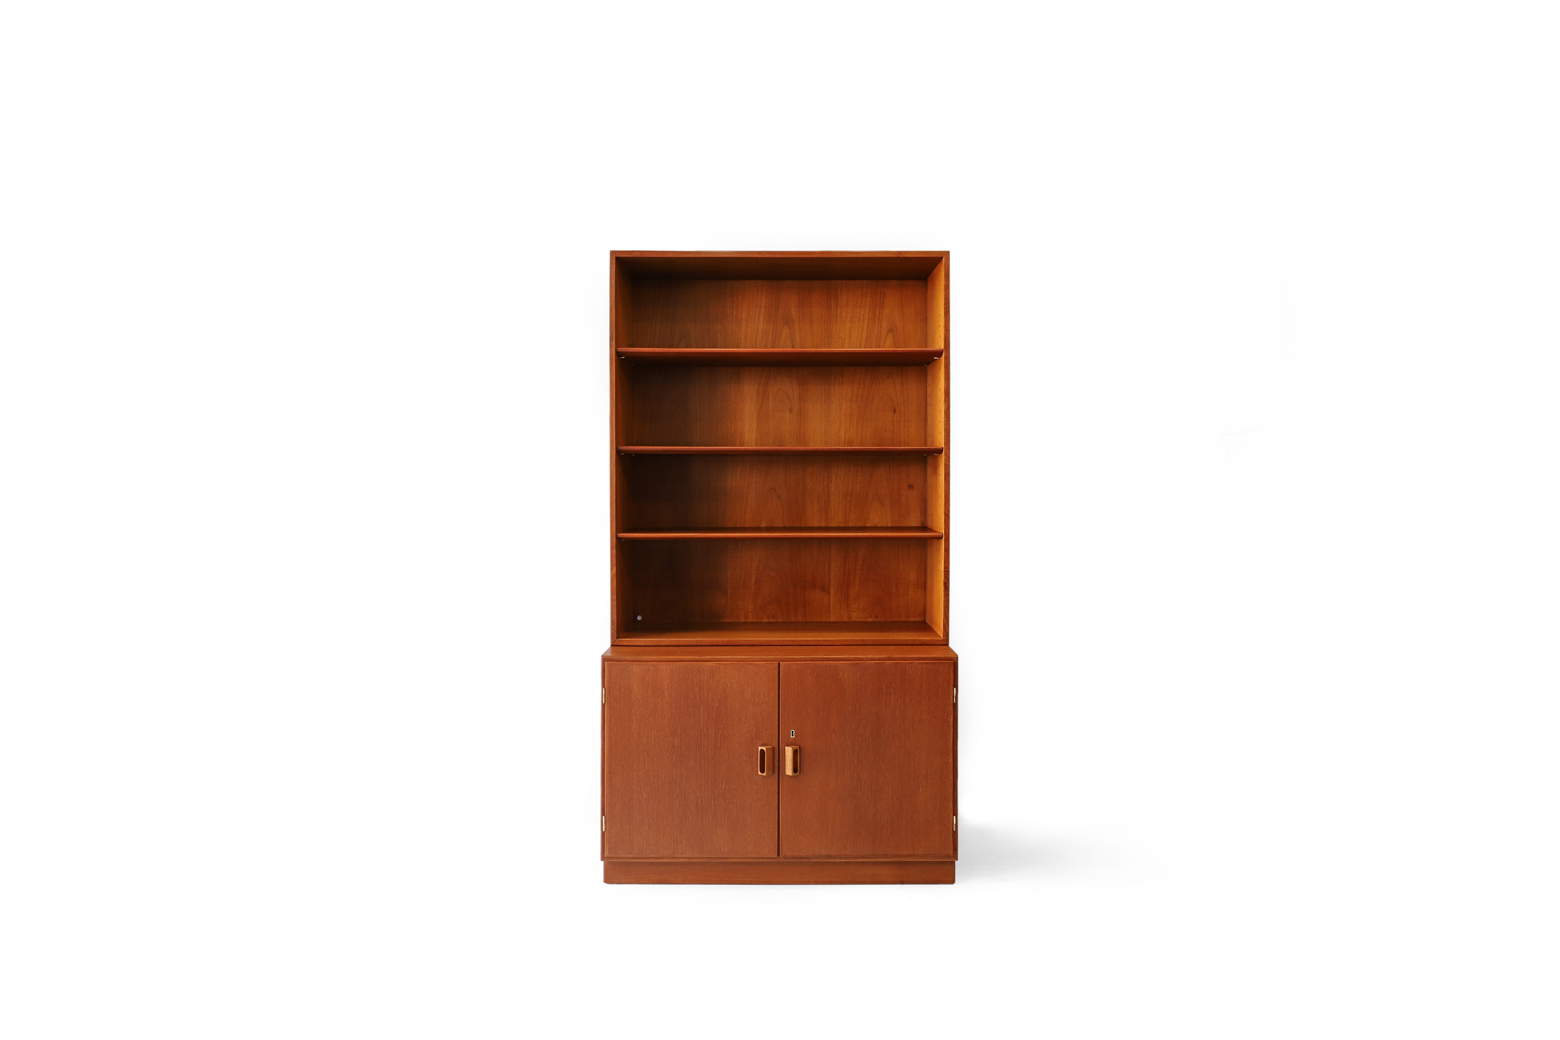 Børge Mogensen Book Case Cabinet Søborg Møbler/ボーエ・モーエンセン ブックケース キャビネット ソボーモブラー デンマーク 北欧ヴィンテージ 収納家具